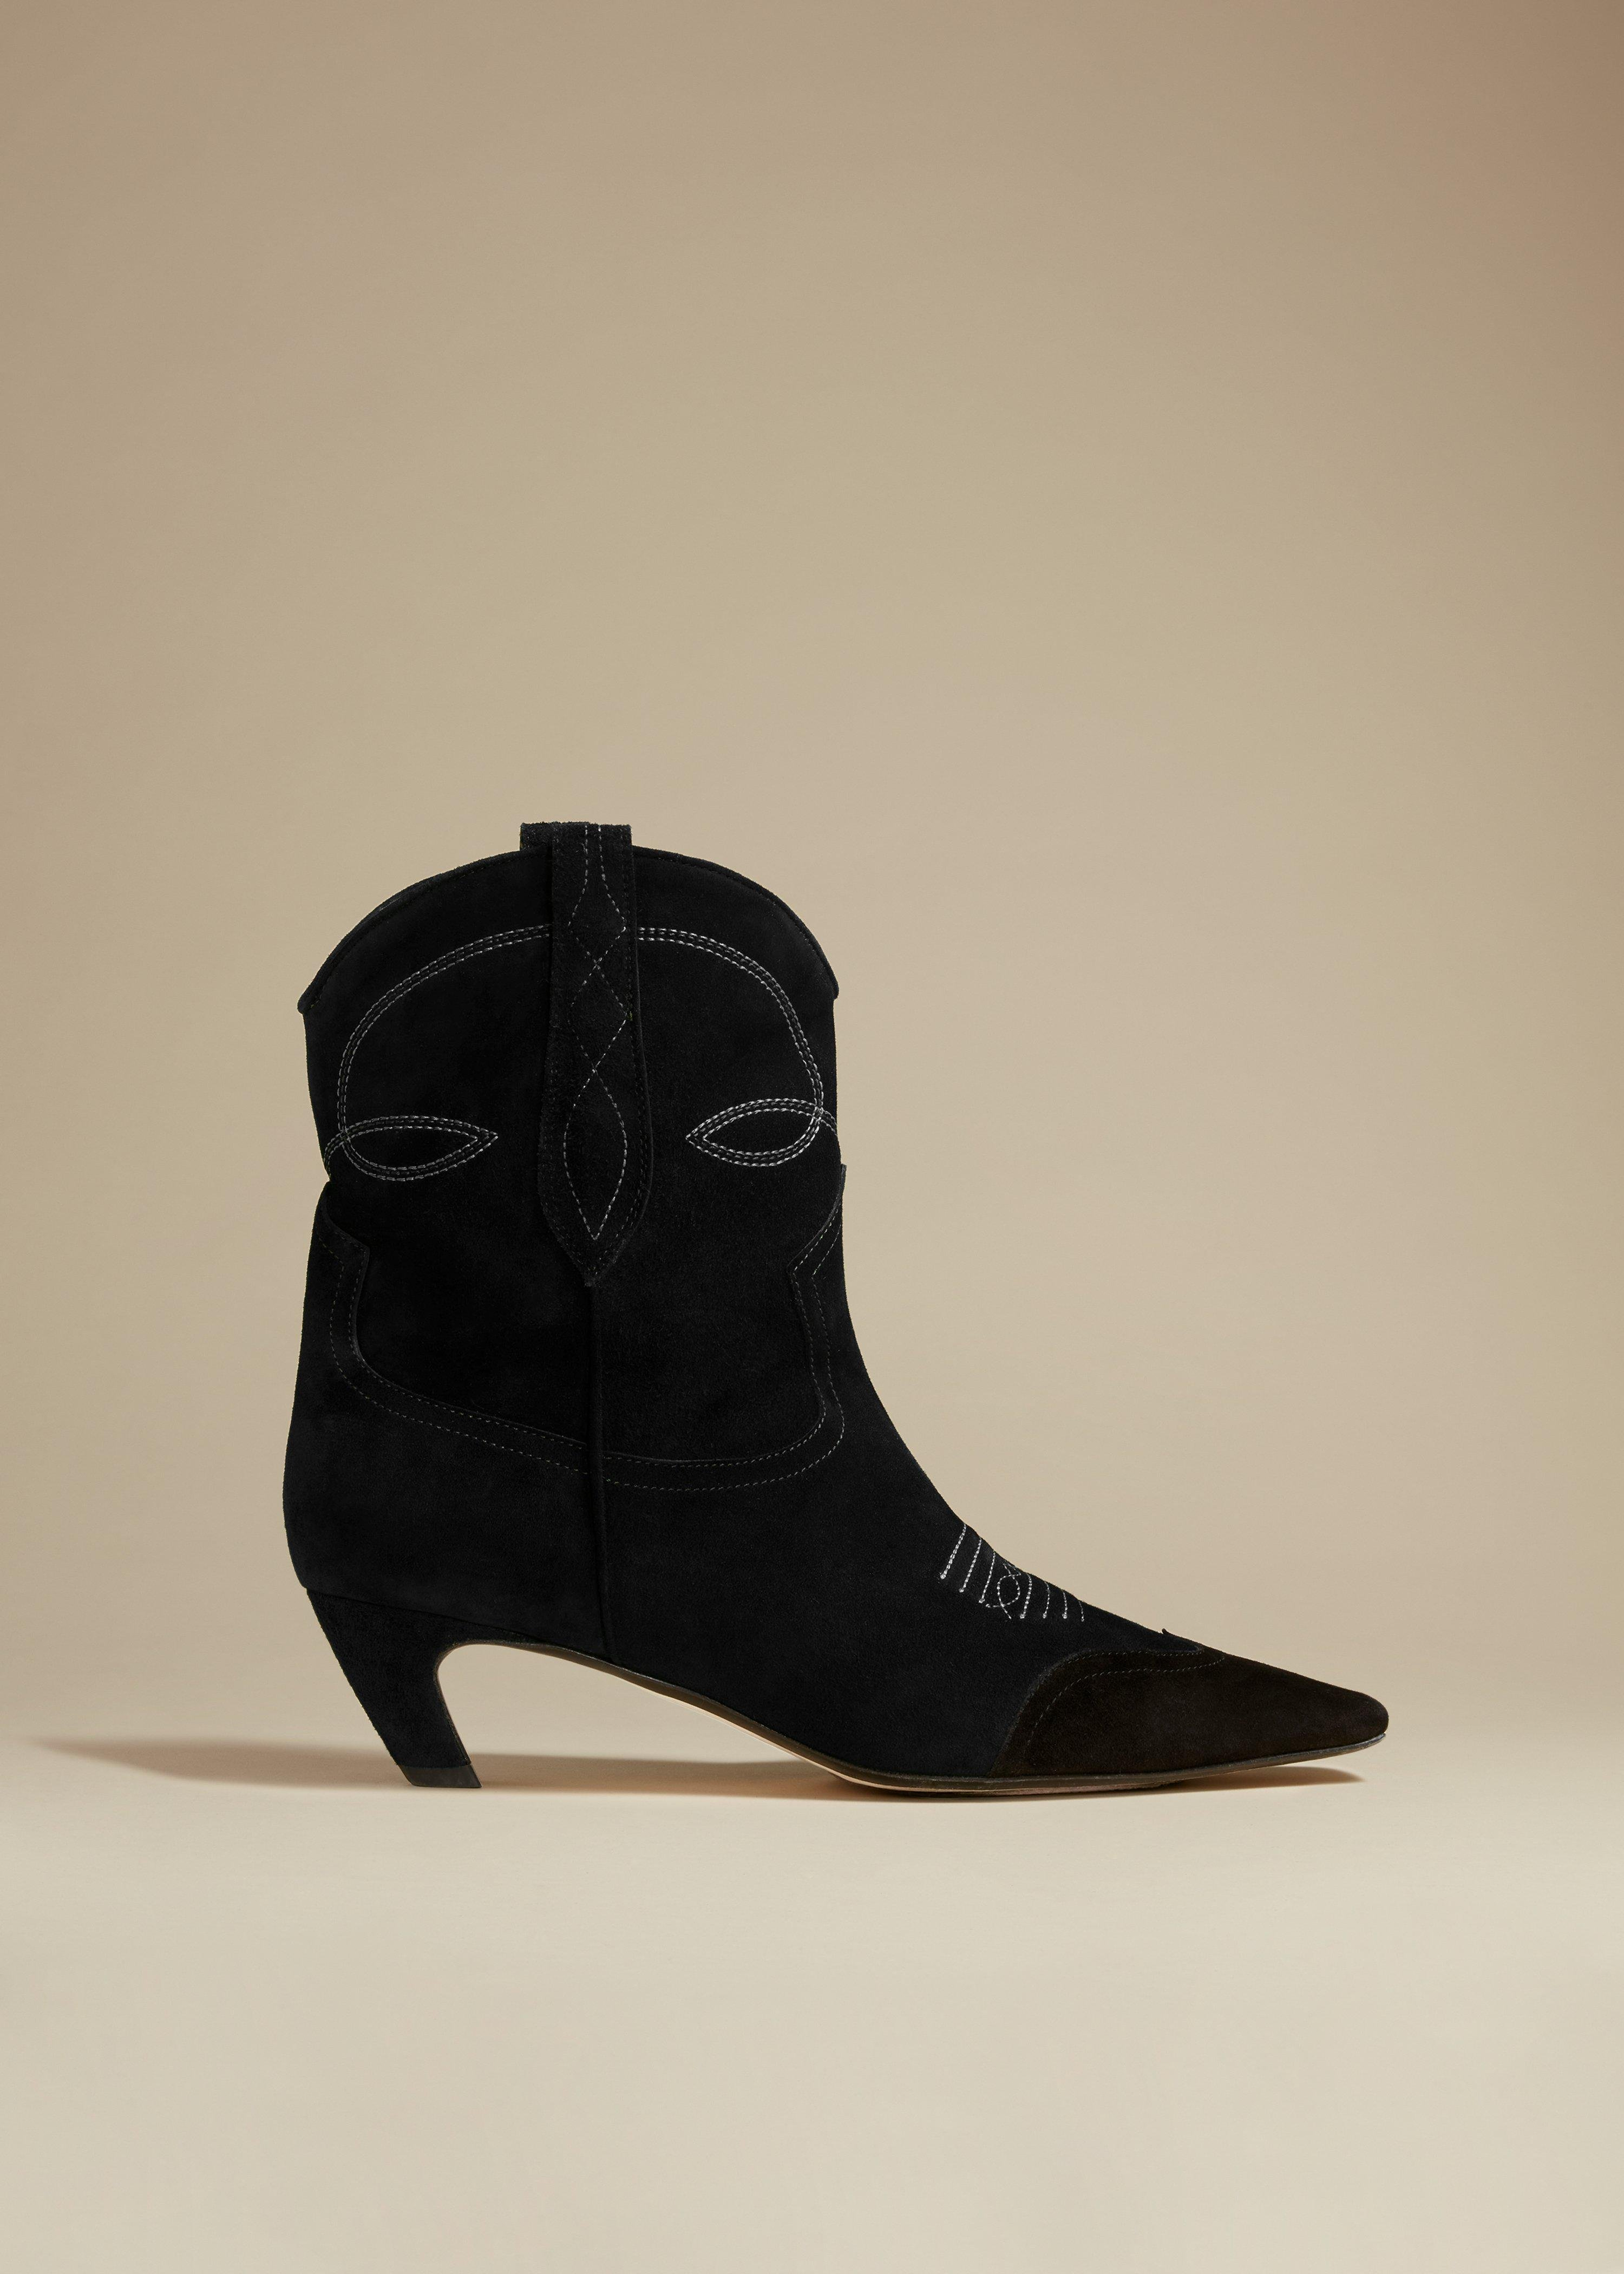 The Dallas Ankle Boot in Black Suede